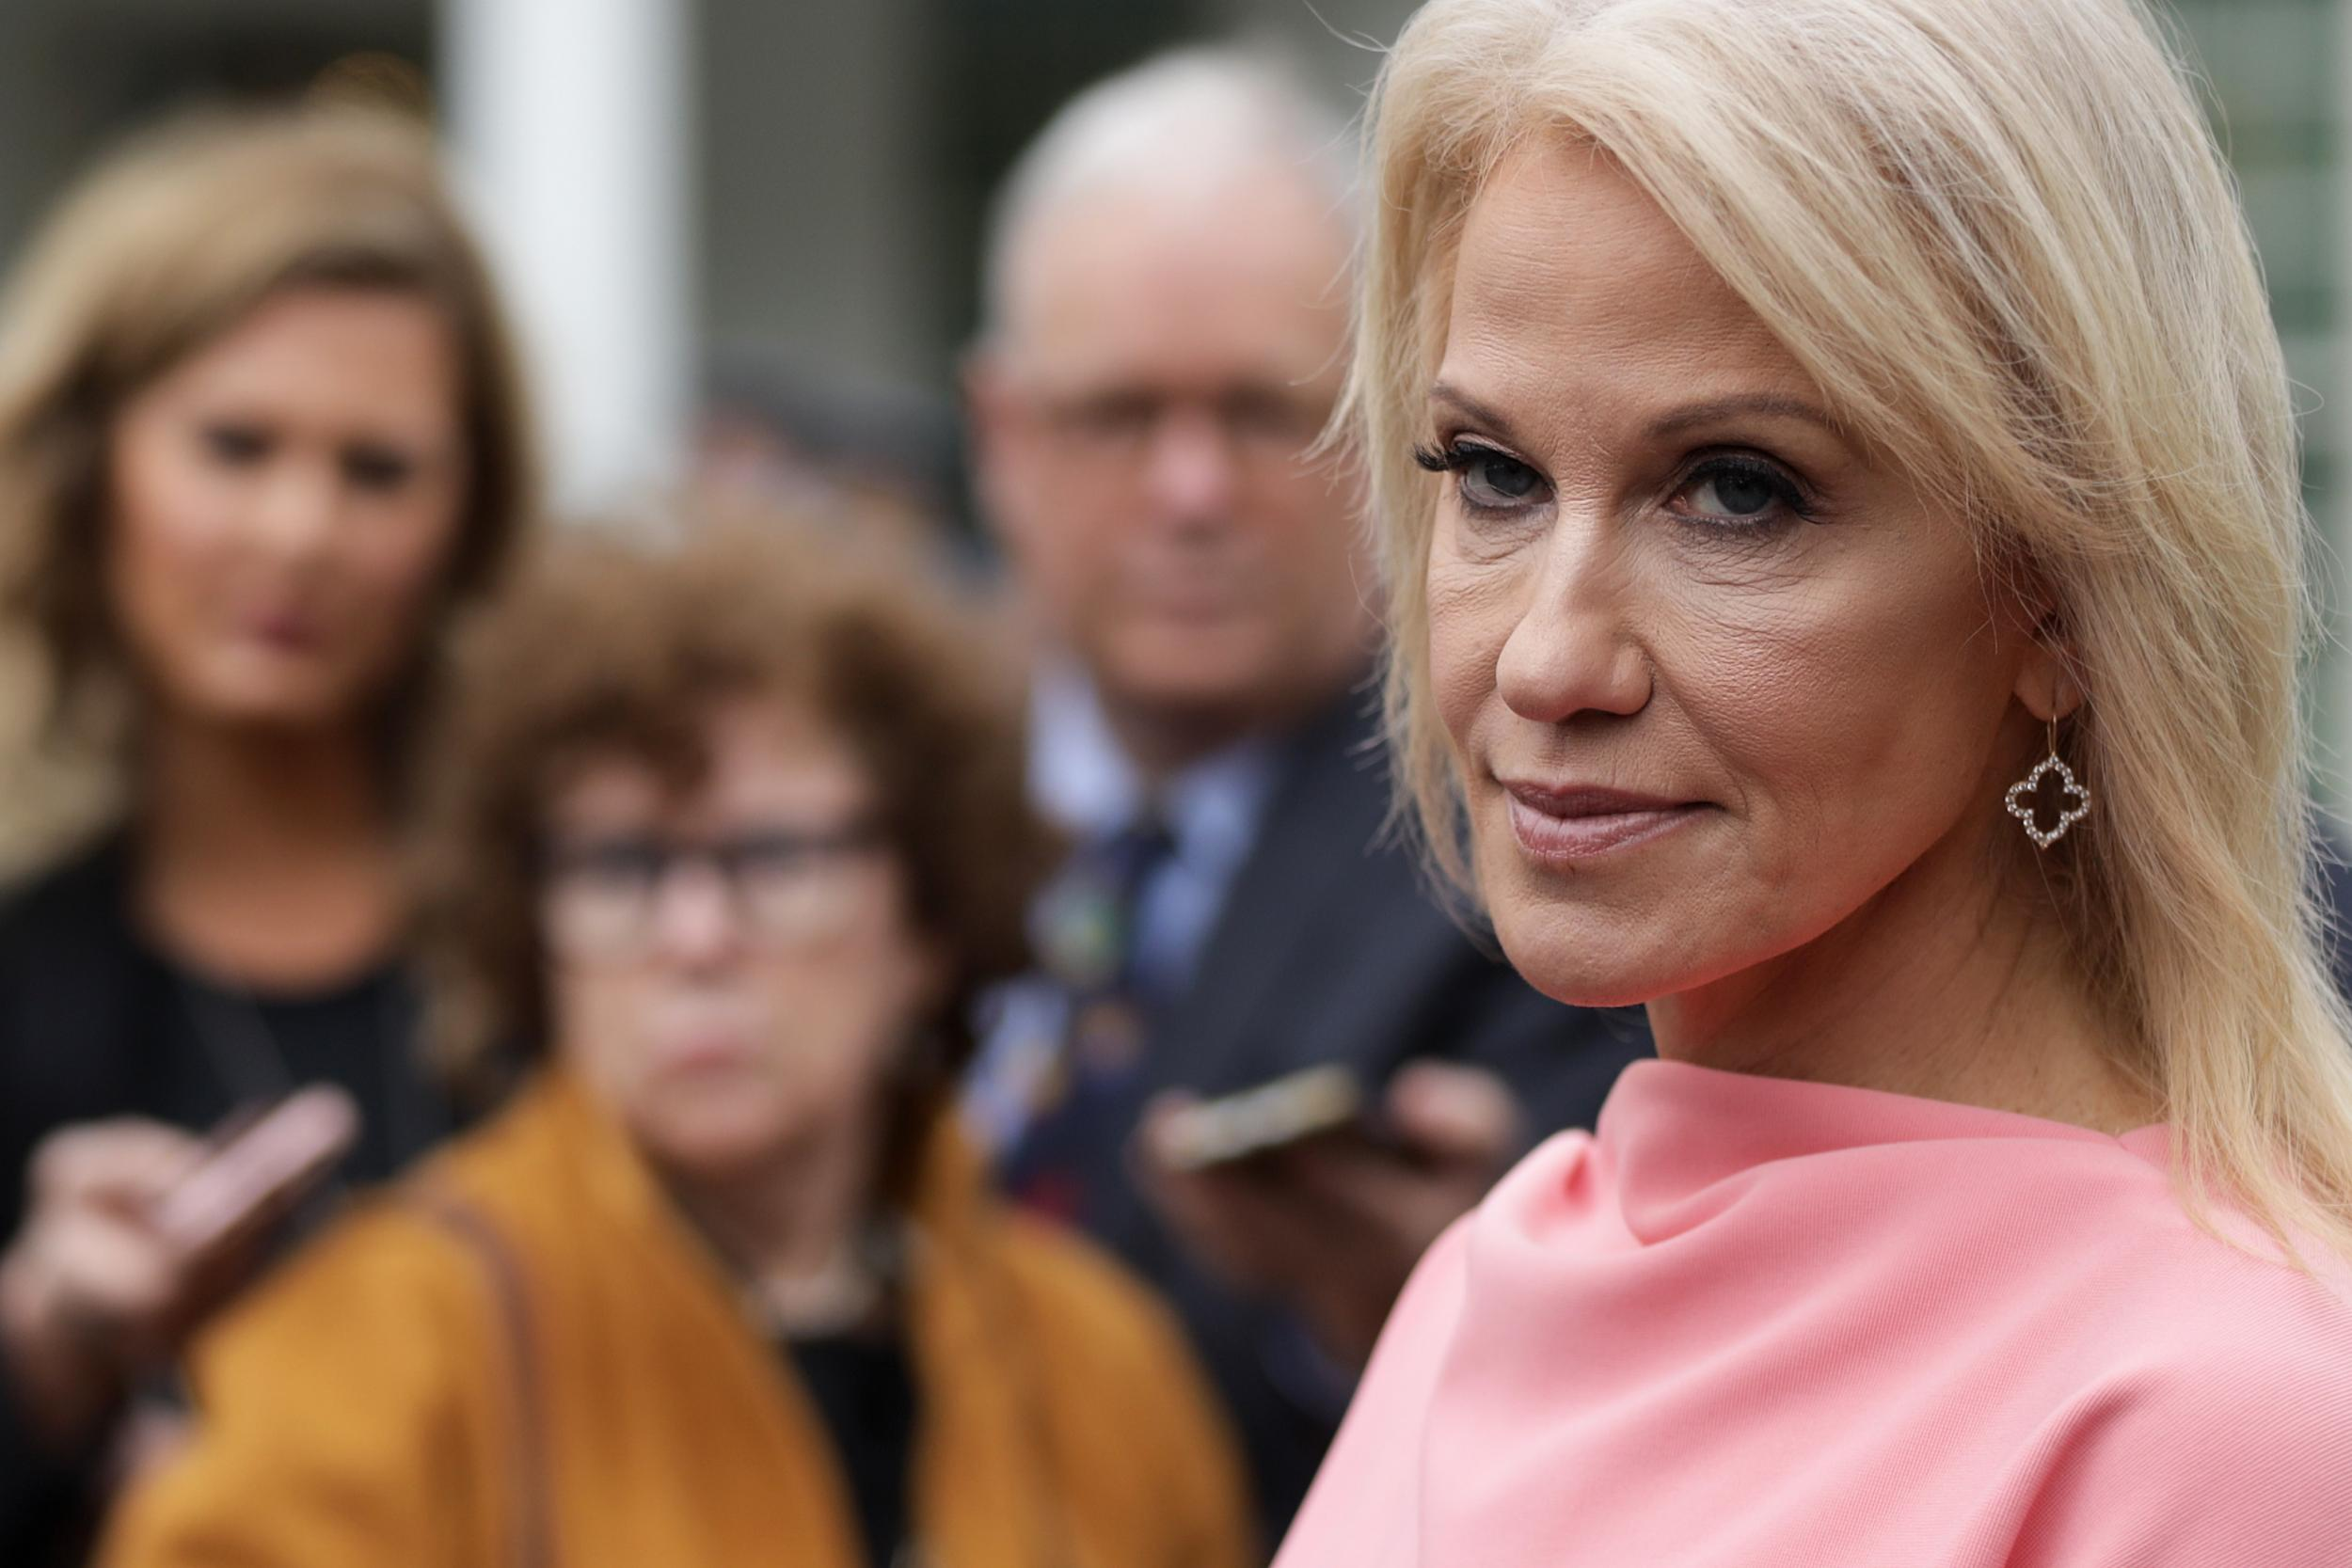 Kellyanne Conway's husband mocks her on Twitter while slamming Trump over impeachment scandal